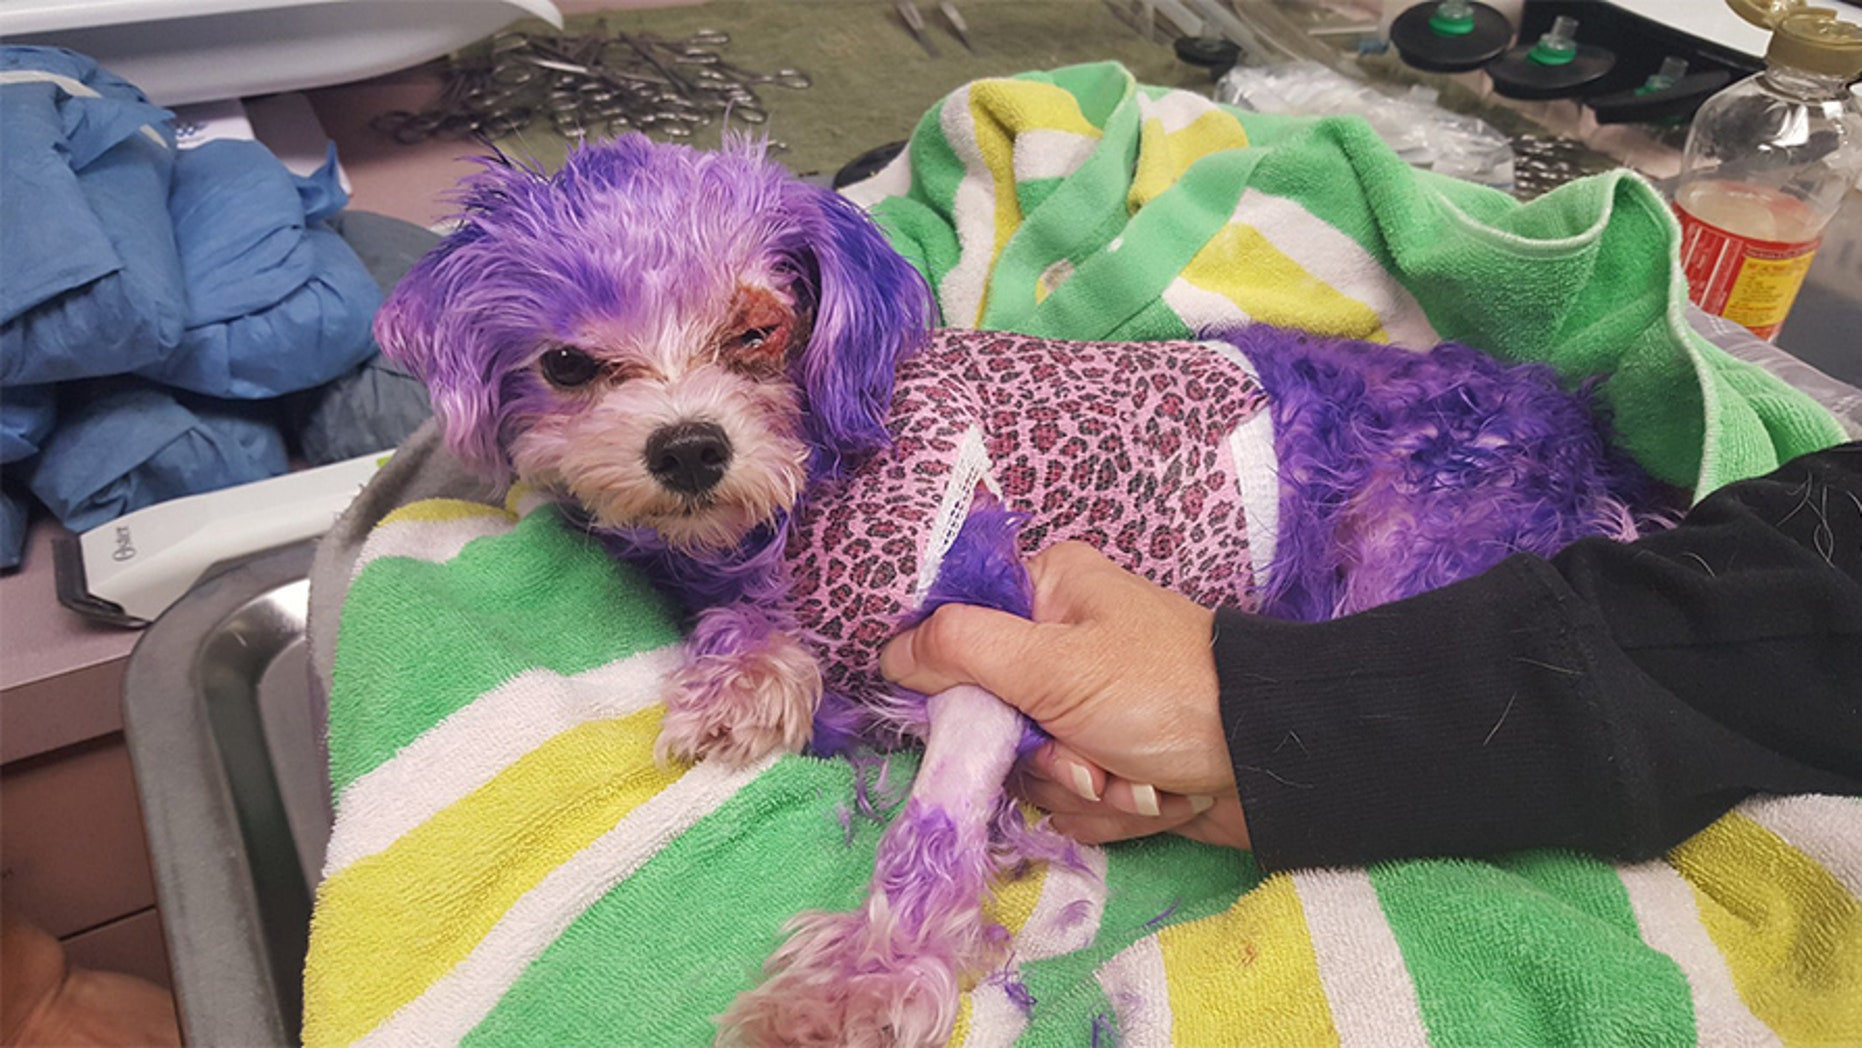 Violet, a white Maltese mix, suffered a number of physical injuries after she was colored purple with human hair dye, according to an animal services team.